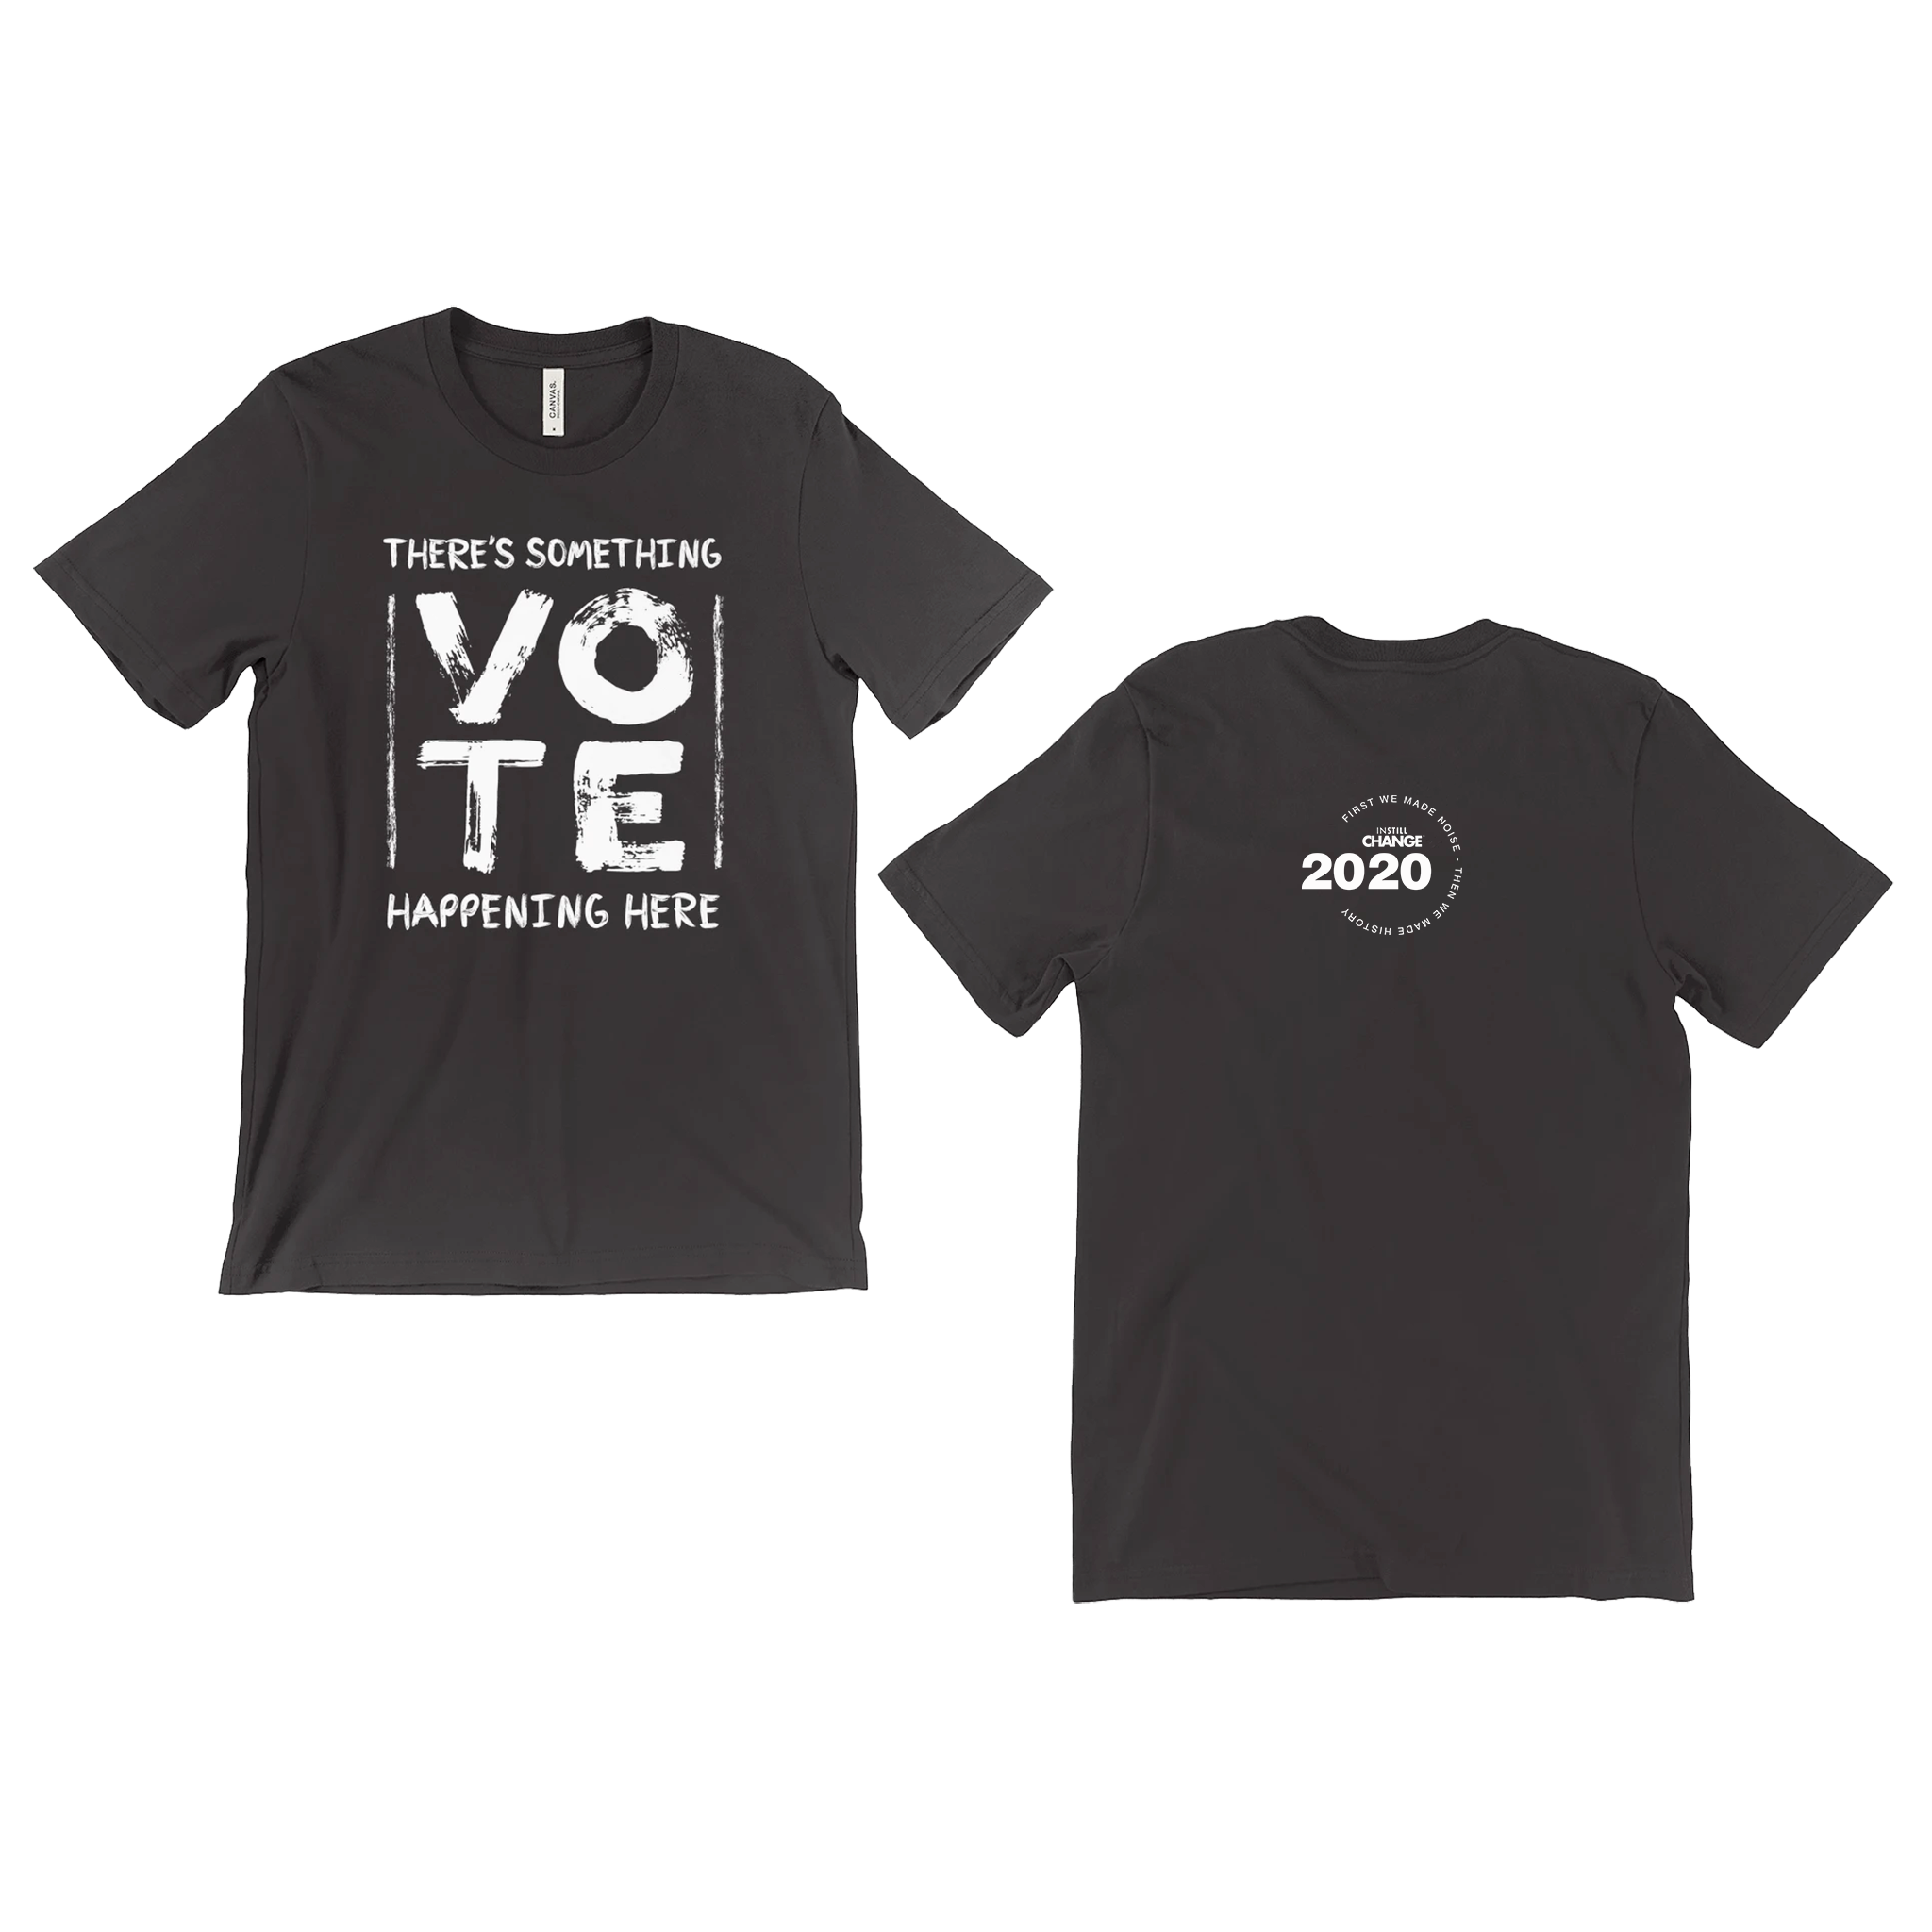 There's Something Happening Here - Vote 2020 Commemorative Edition - ON SALE NOW!